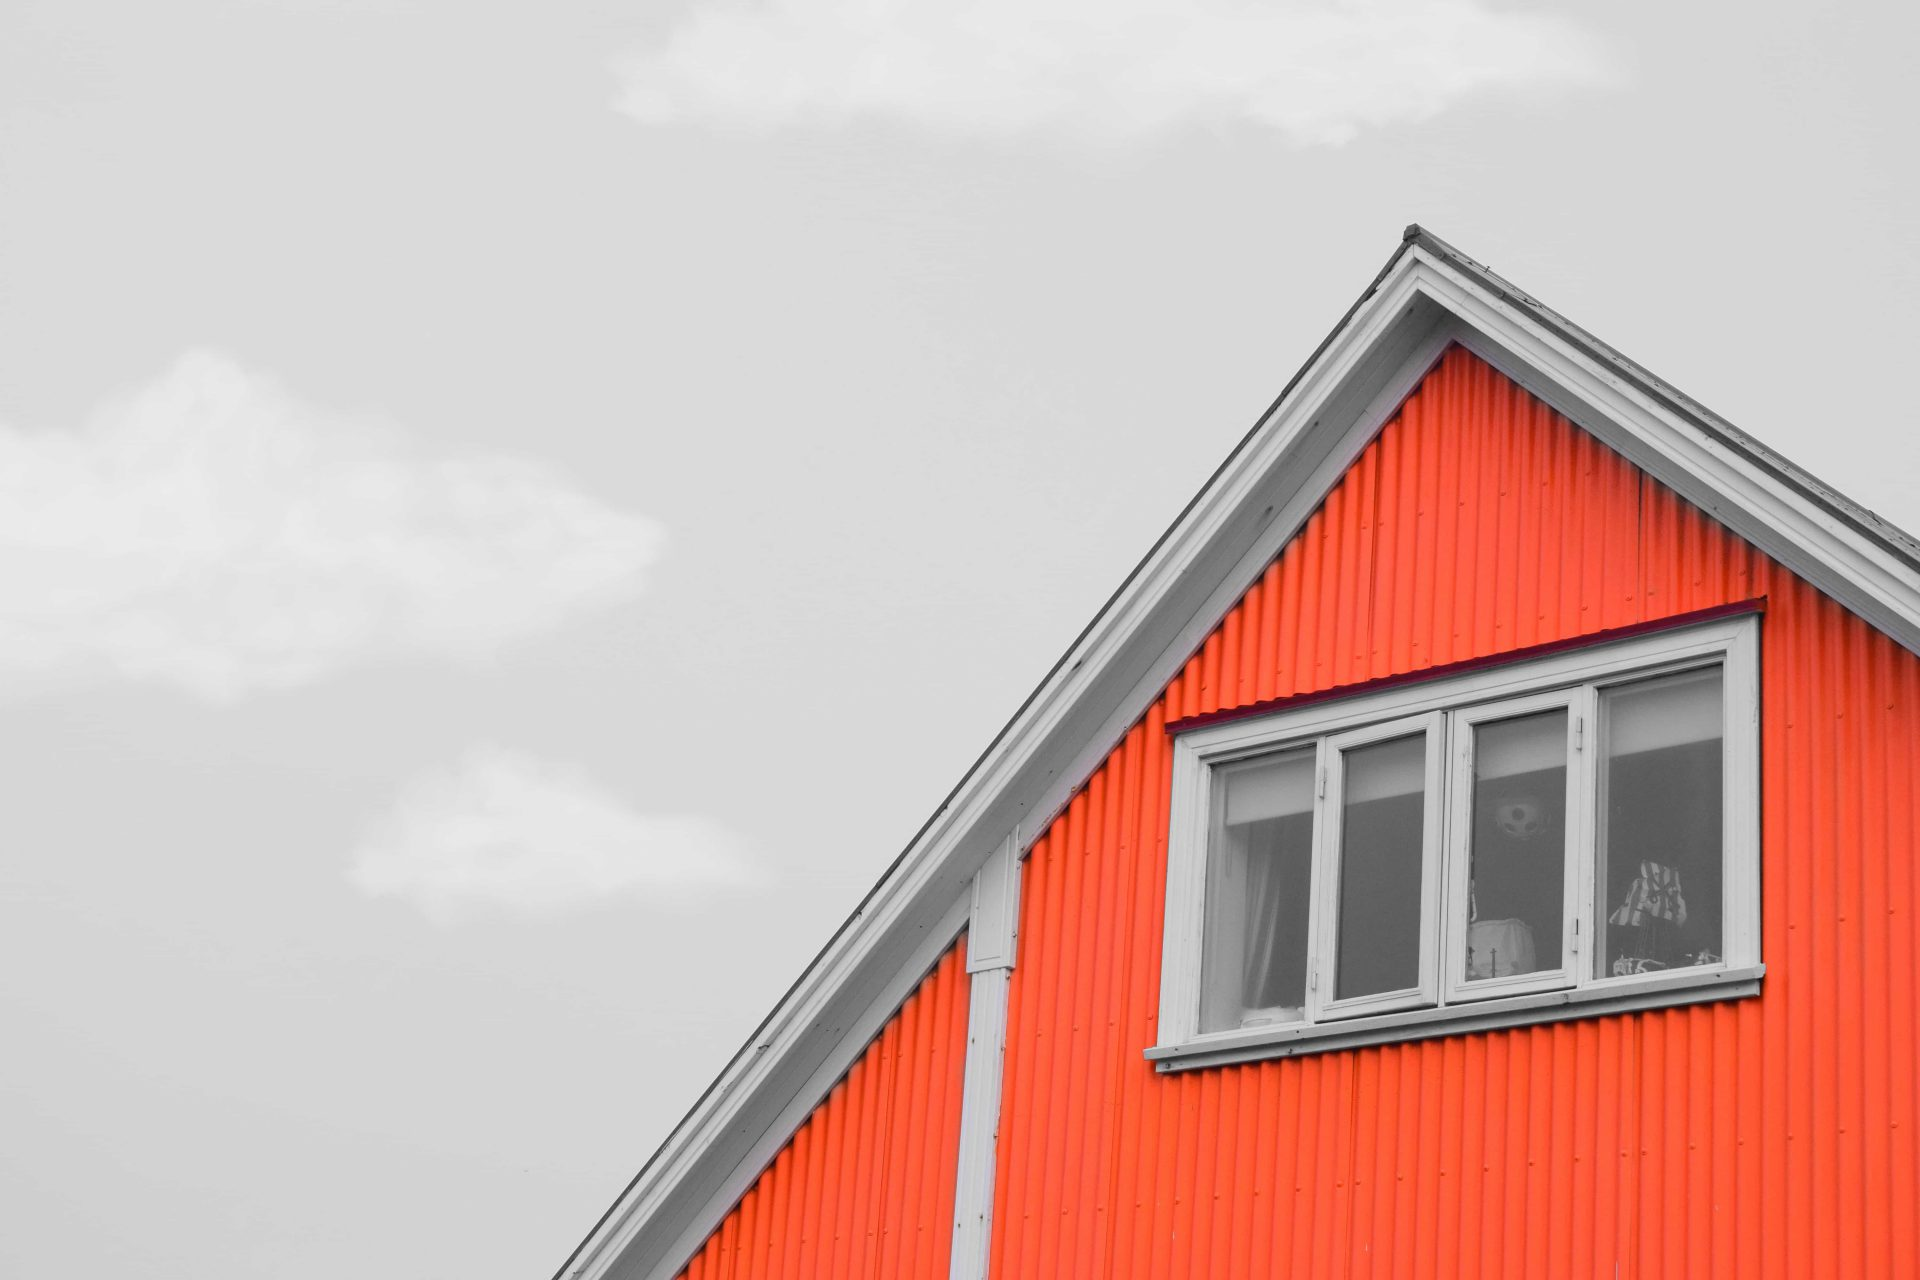 Red house gable end